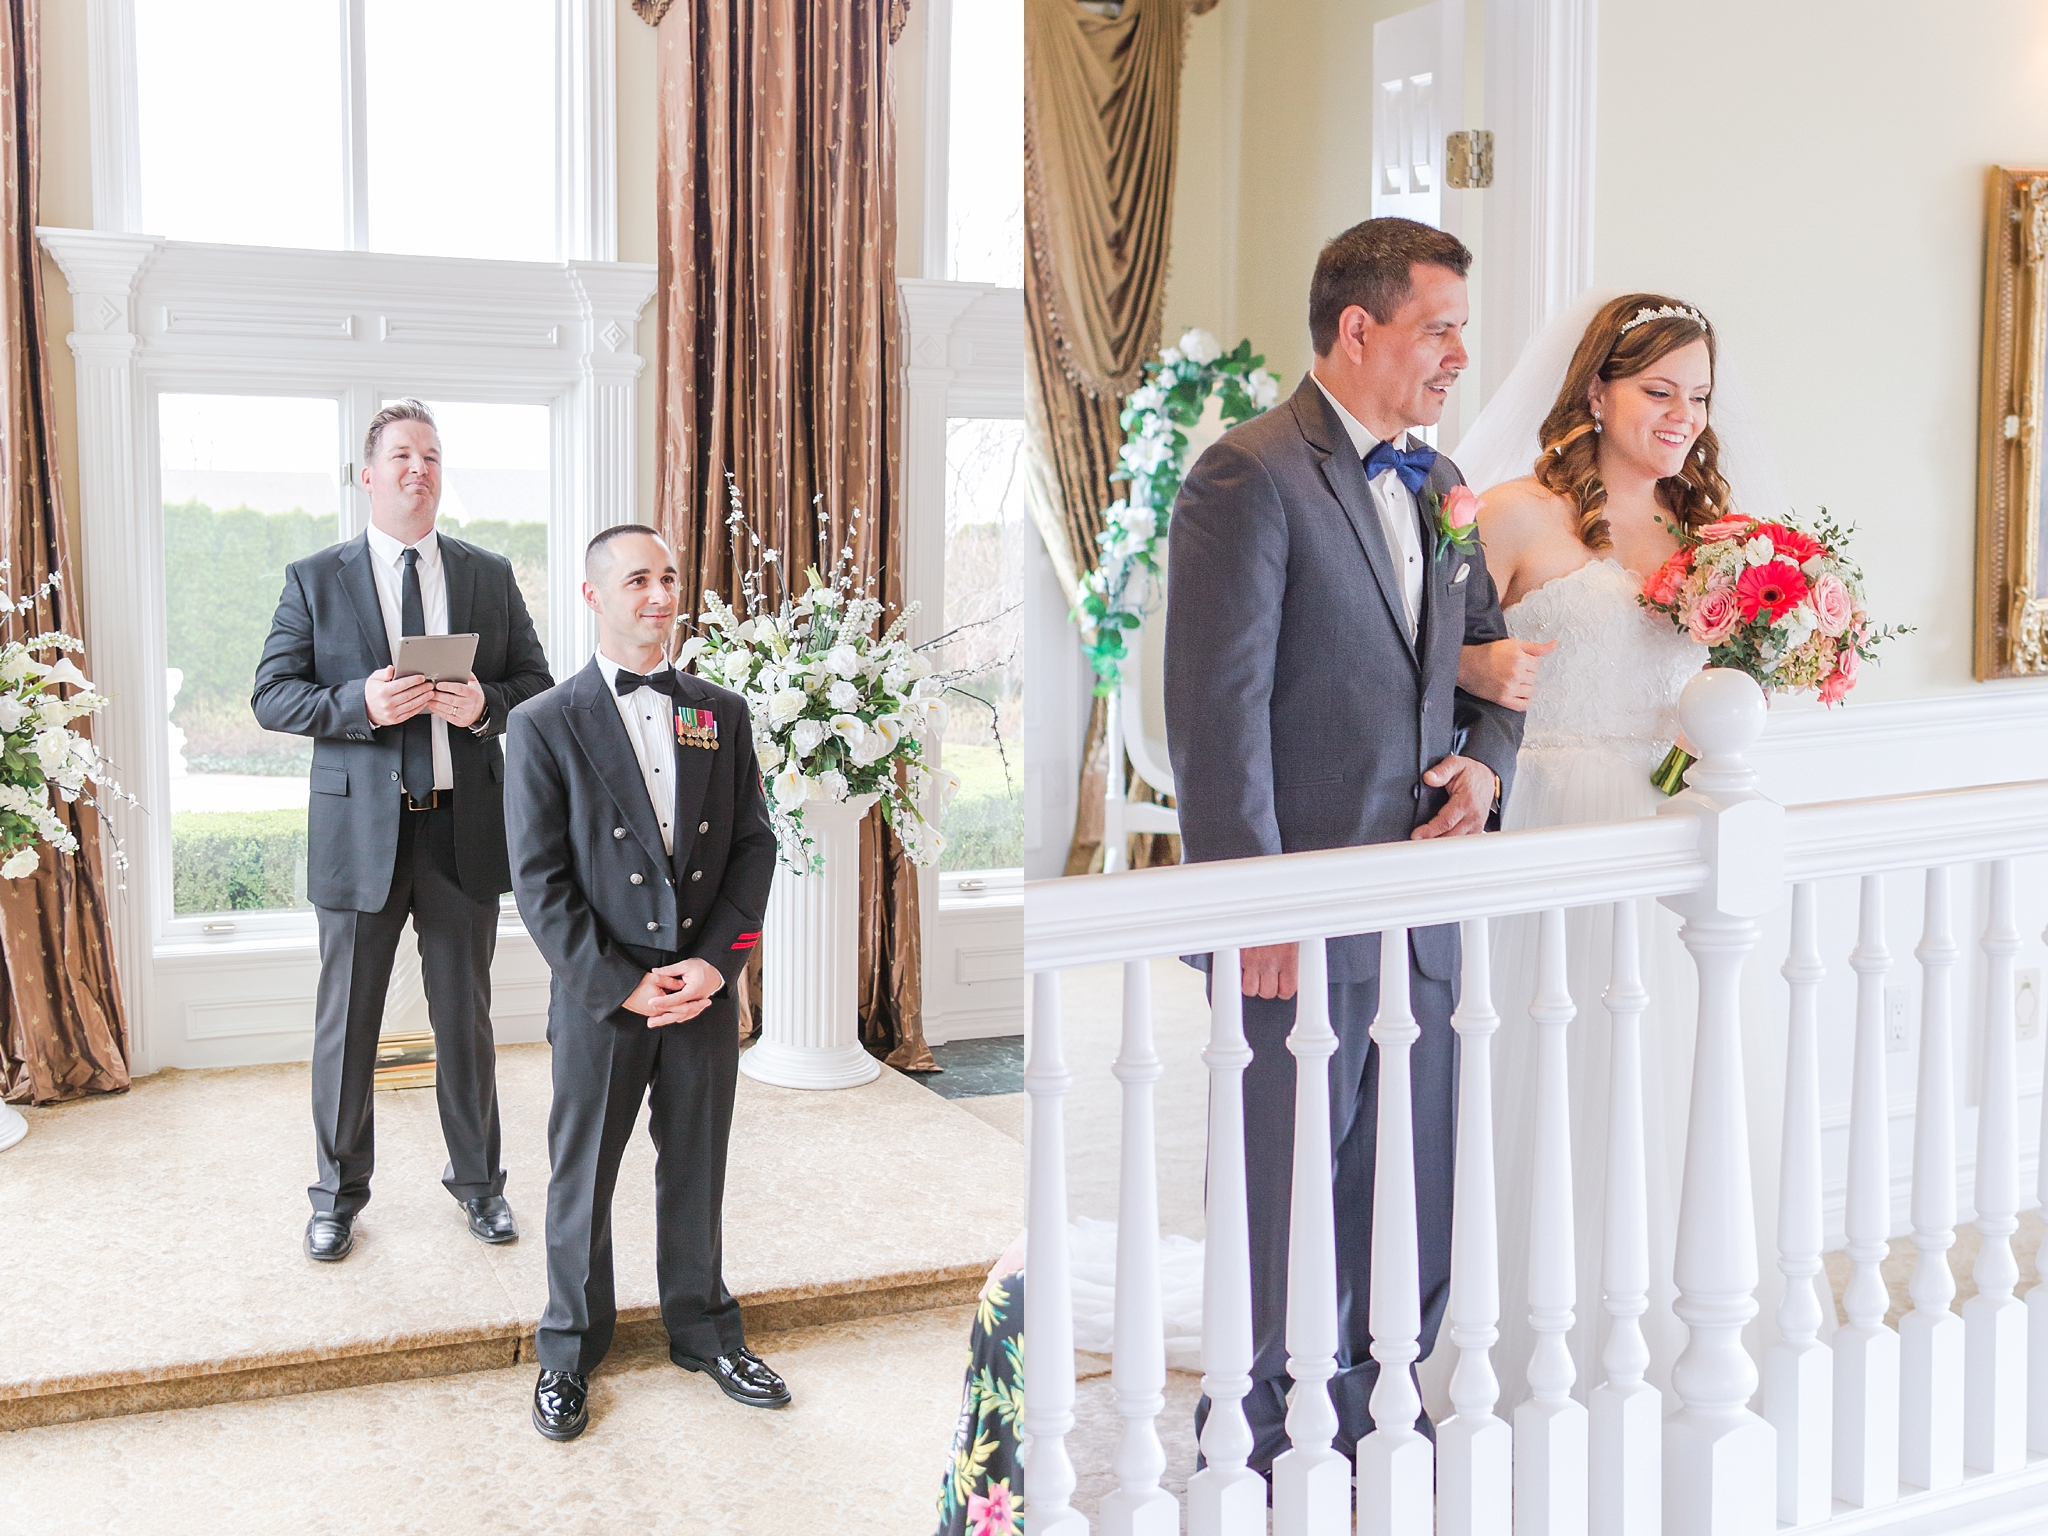 romantic-artful-candid-wedding-photos-in-st-clair-shores-at-the-white-house-wedding-chapel-by-courtney-carolyn-photography_0024.jpg